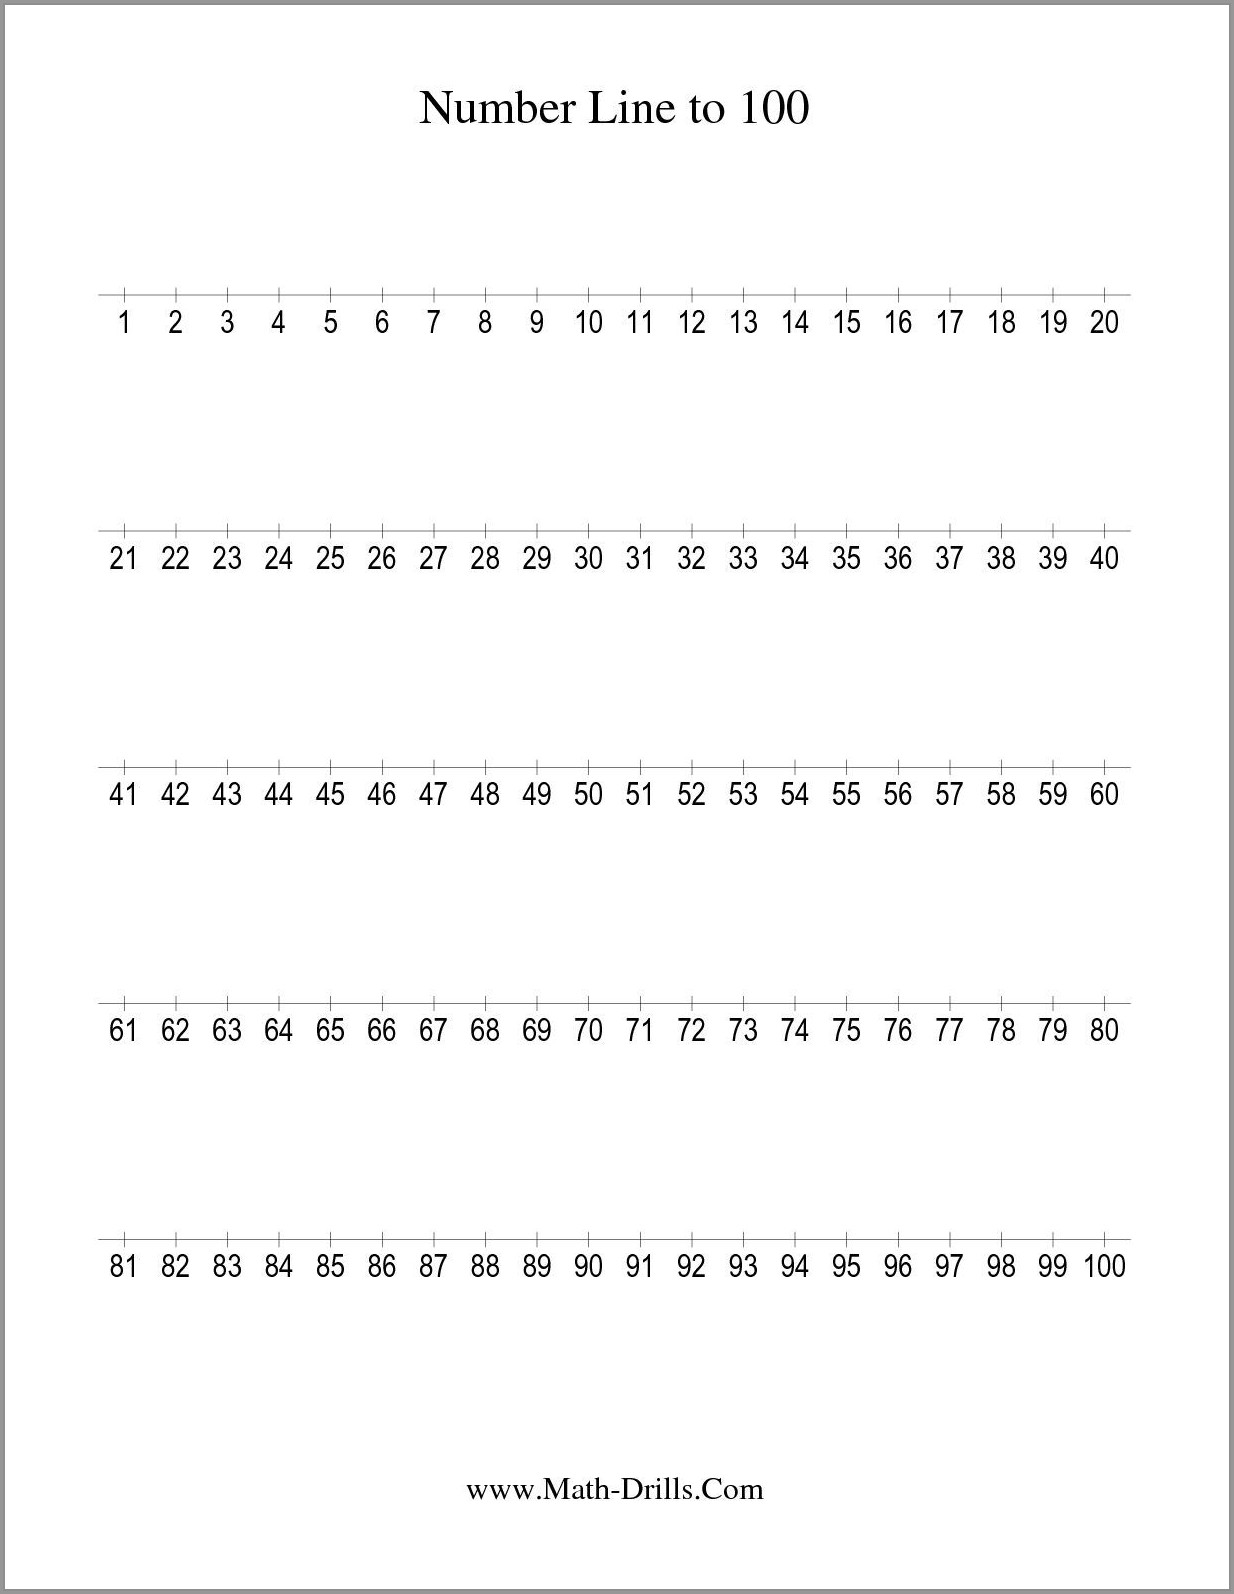 Number Line To 100 Worksheet